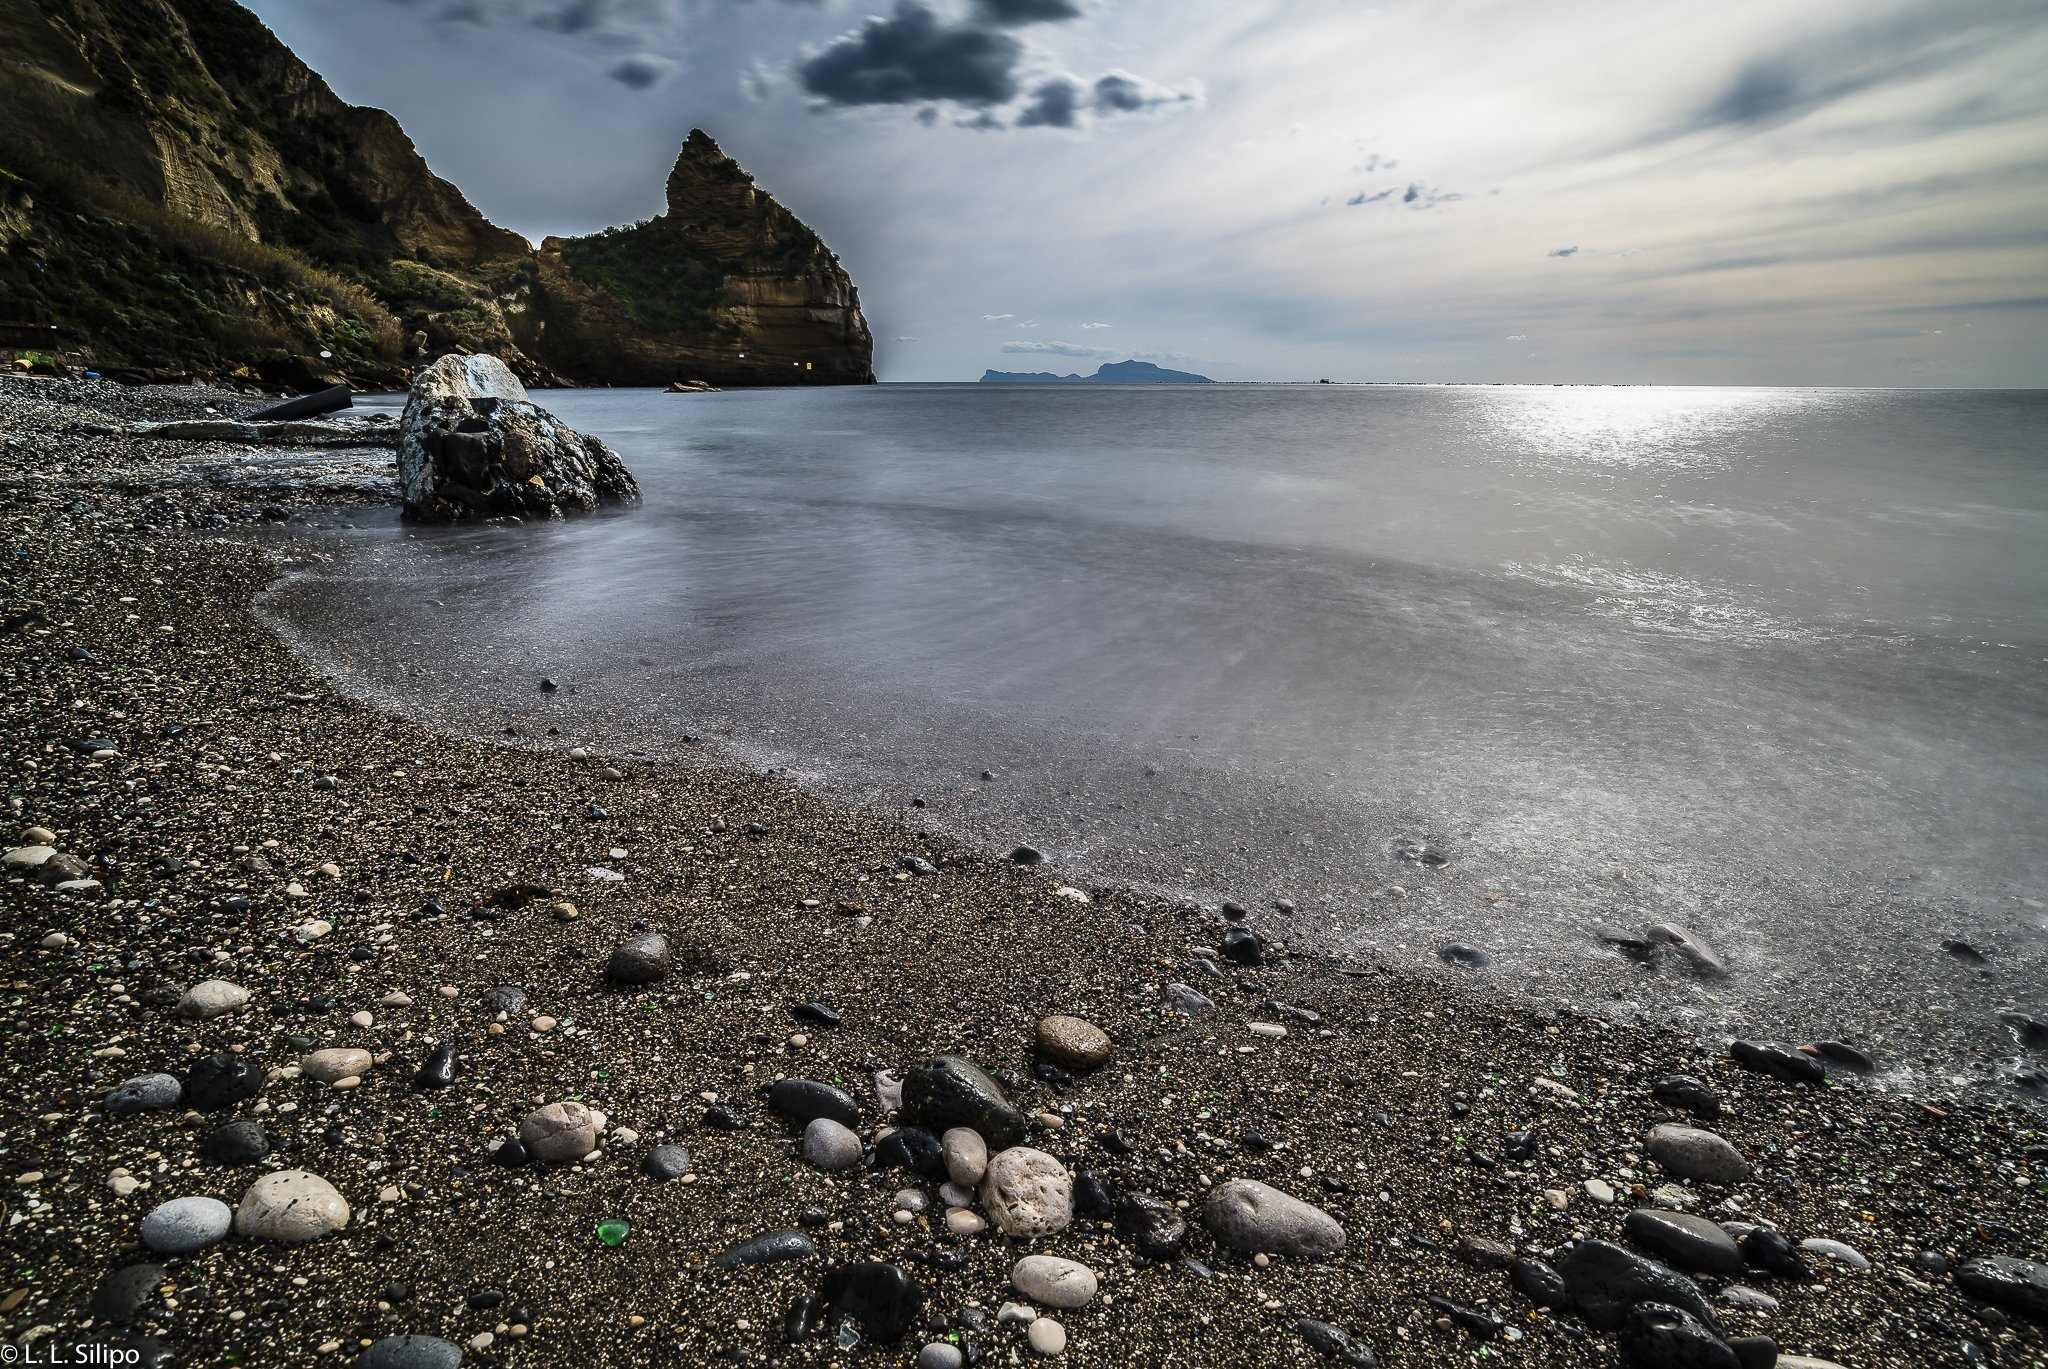 background, bay, beach, beautiful, blue, coast, coastline, europe, green, gulf, island, italy, juvenile, landscape, naples, nature, nisida, ocean, rock, scenic, sea, shore, sky, summer, sunset, tourism, travel, vacation, view, water, winter, winter landscape